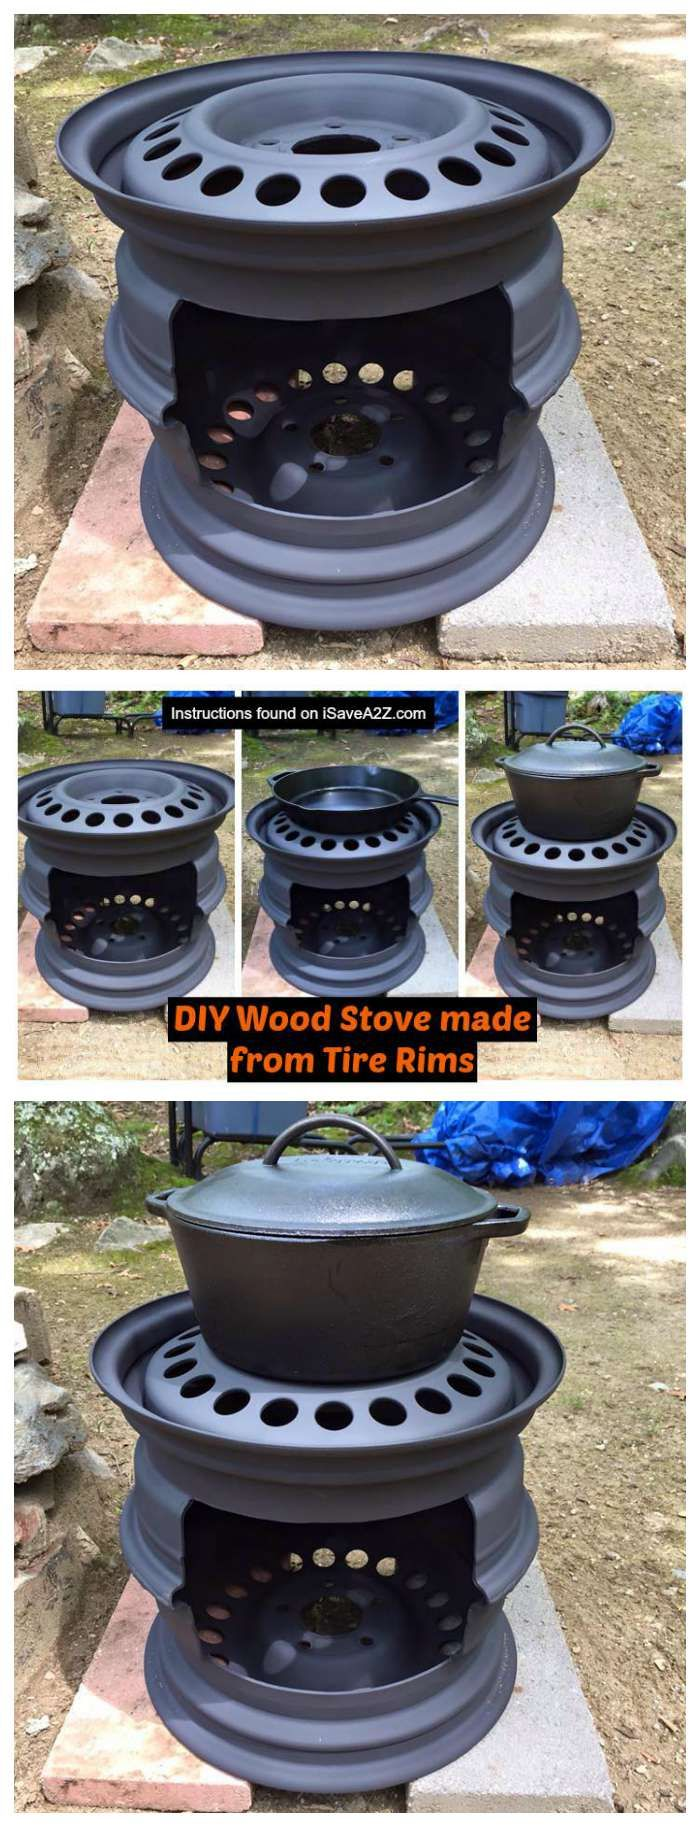 Have some spare rims laying around that you aren't sure what to do with them? Upcyle them. DIY Wood Stove made from Tire Rims. Find out how here! We suggest using the high heat only on the outside - Rust-Oleum High Heat Paint should not come into direct contact with flames. Learn more about this awesome product: http://www.rustoleum.com/product-catalog/consumer-brands/specialty/high-heat-spray/